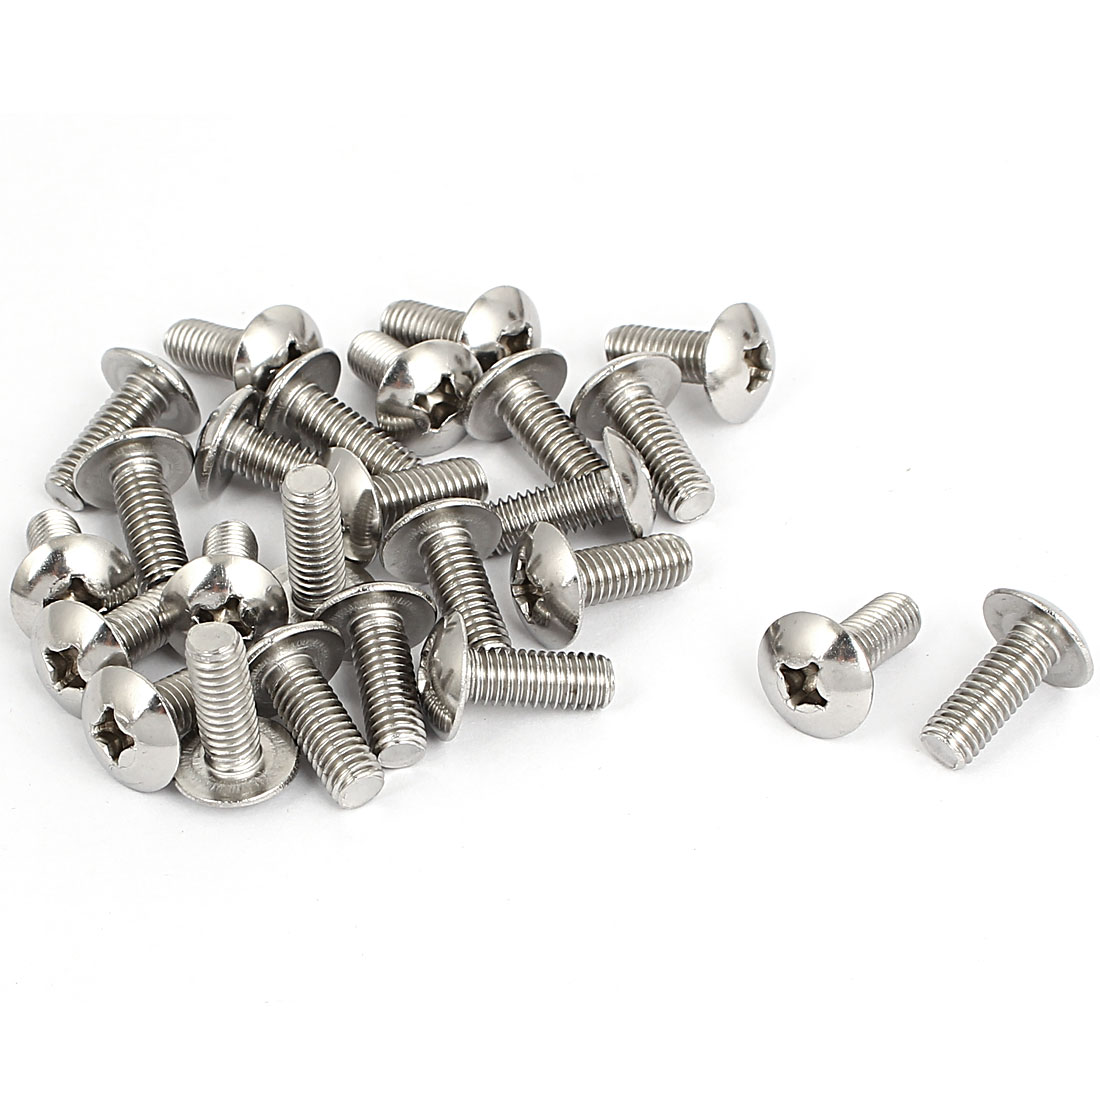 M6x16mm Stainless Steel Truss Phillips Head Machine Screws 25pcs